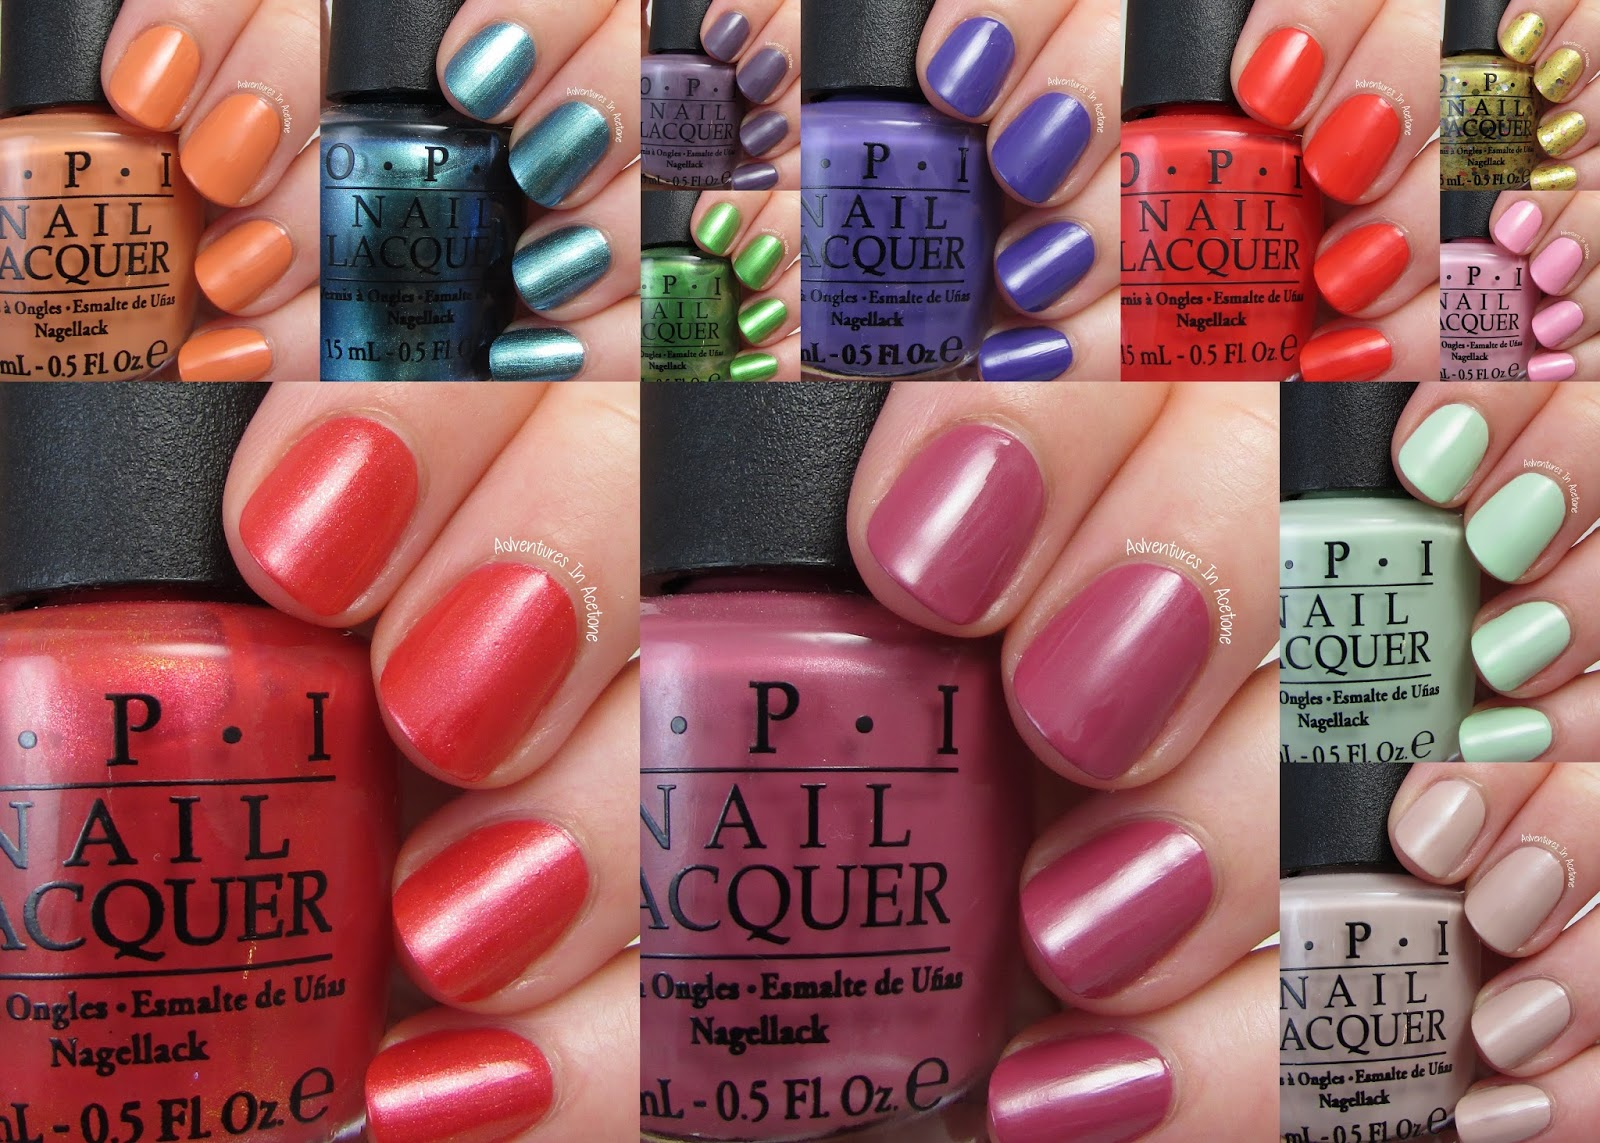 Hawaii Collection By Opi Brings The Fresh Bright Colors Of Its Namesake Islands To Nails And Toes For Spring Summer 2017 This New Features A